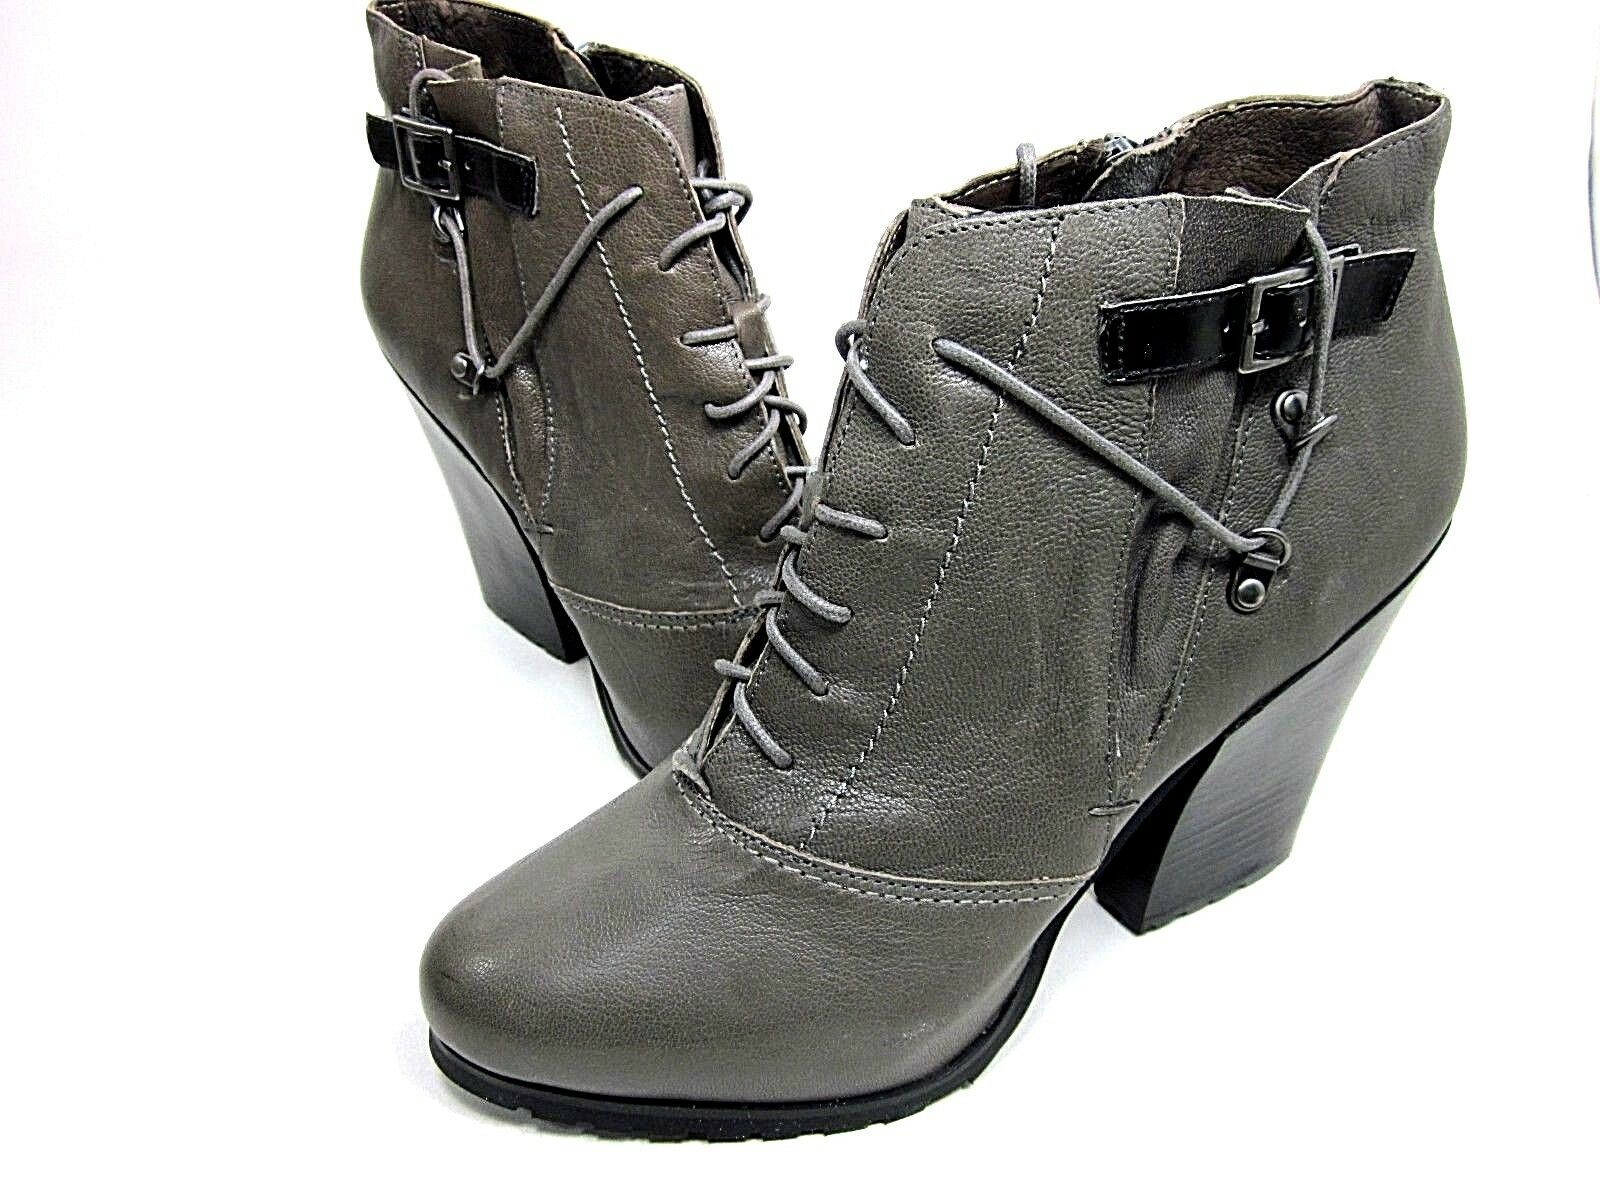 BACIO61, PESANTI ANKLE BOOT, WOMEN'S, DUST GREY, US SIZE 9.5 M NEW/DISCOLORED